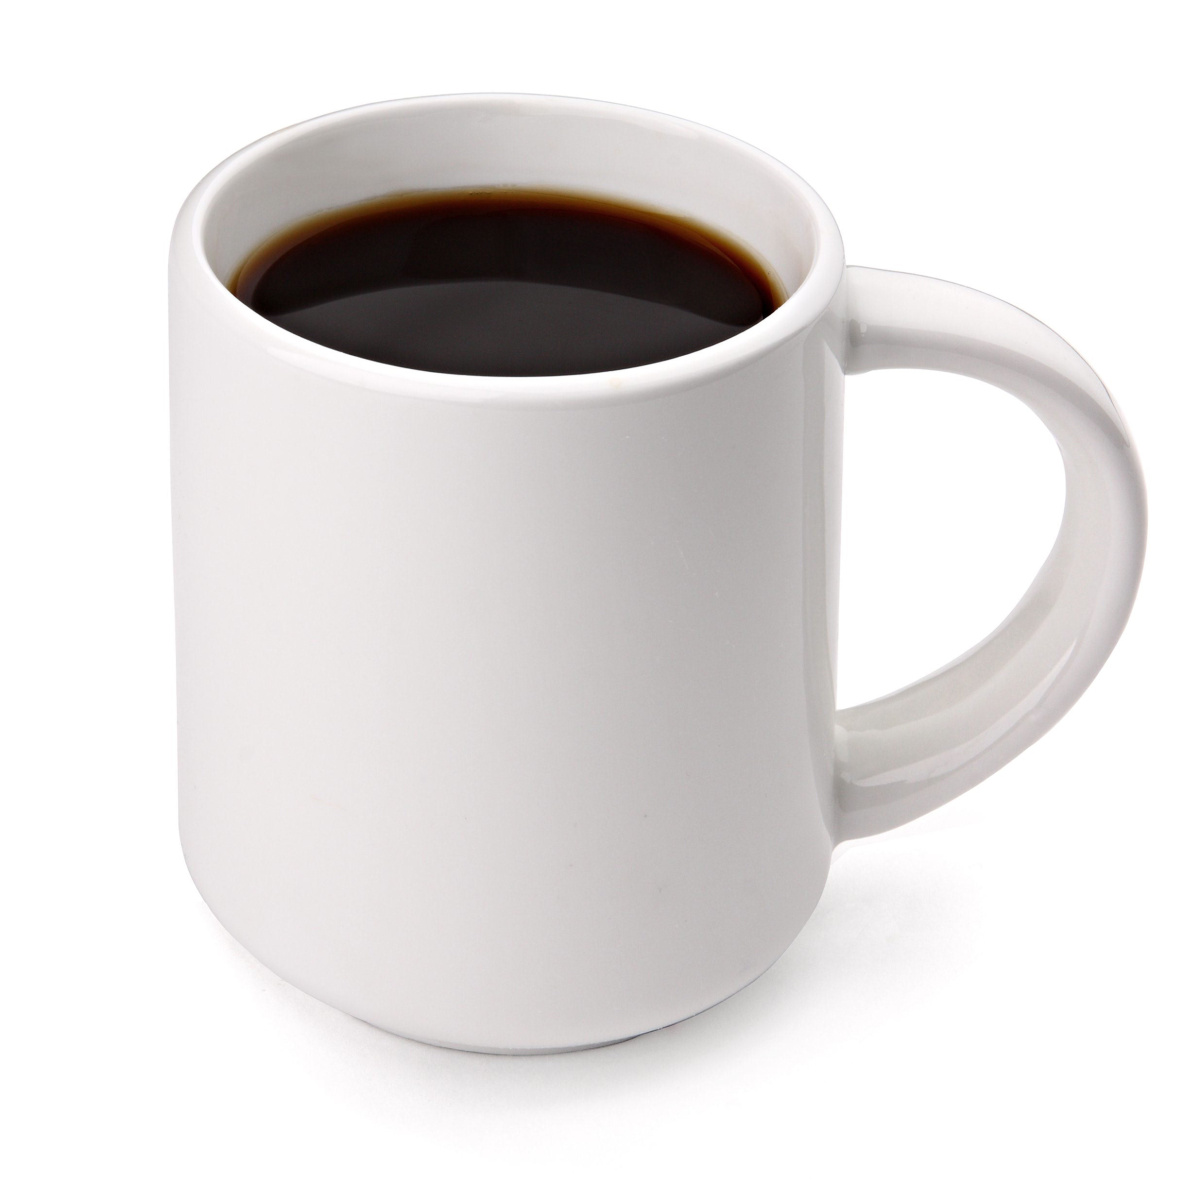 Study Says The Health Benefits Of Coffee Include A Longer Life Study Says The Health Benefits Of Coffee Include A Longer Life new pics